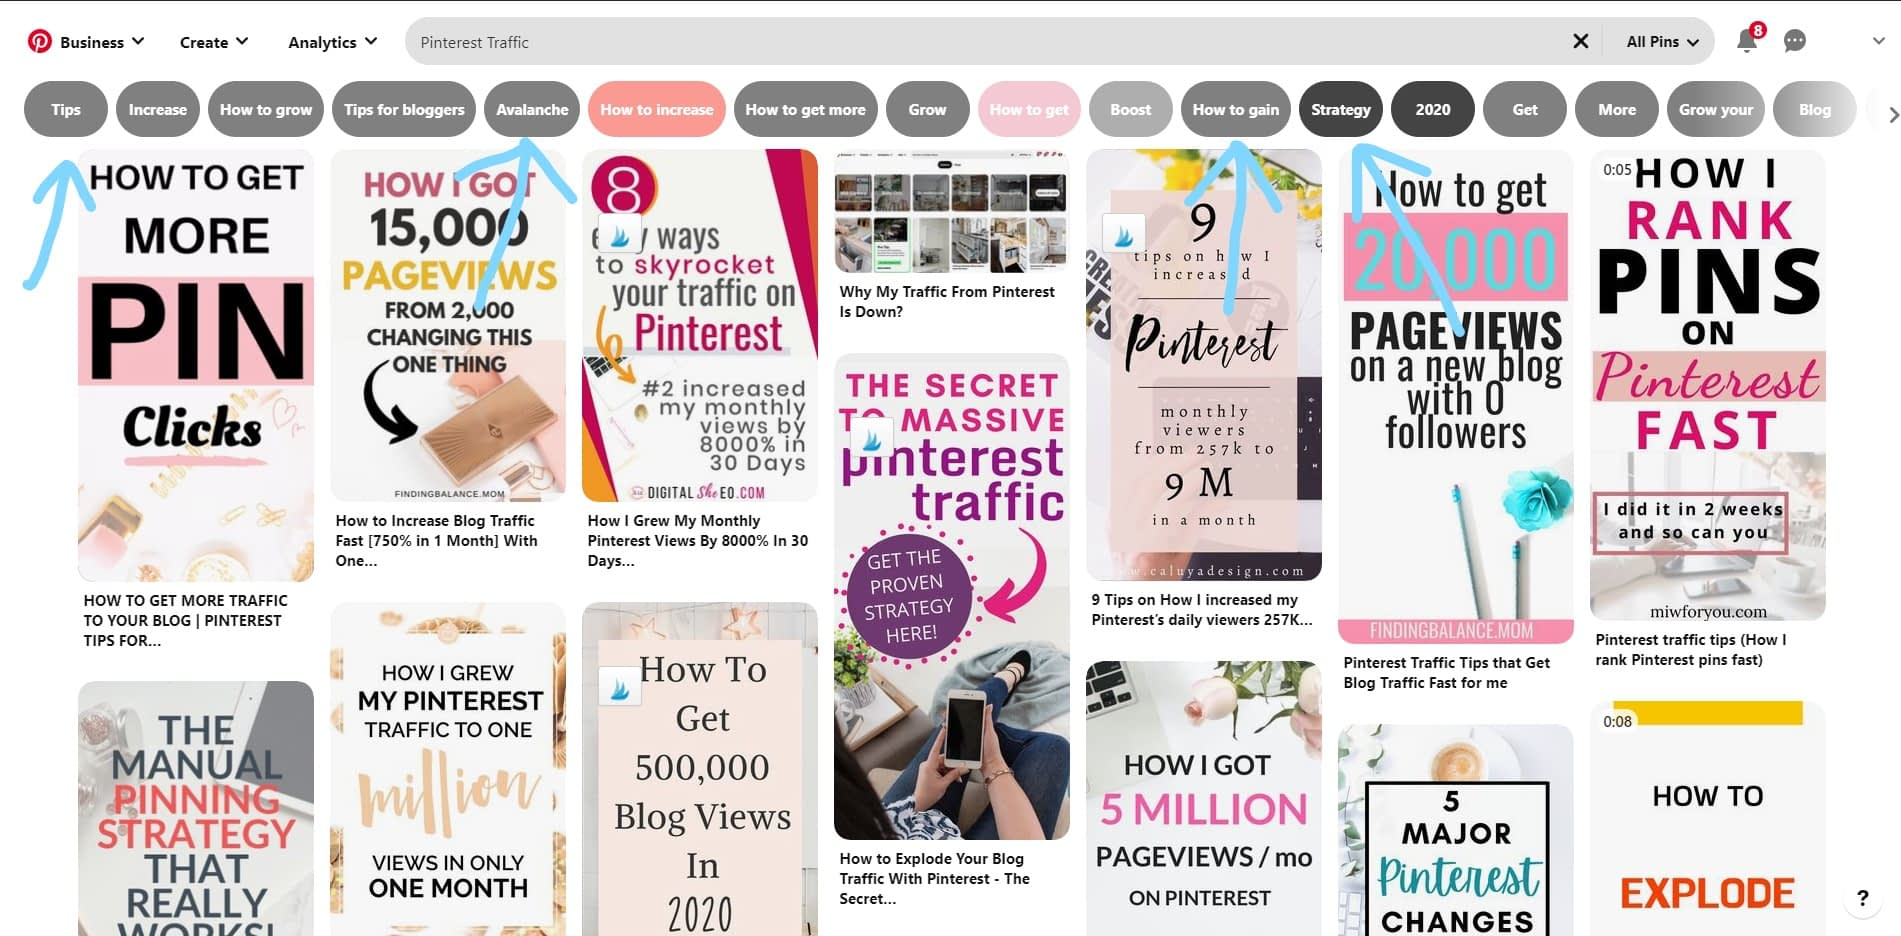 Keyword research for Pinterest Marketing in 2020